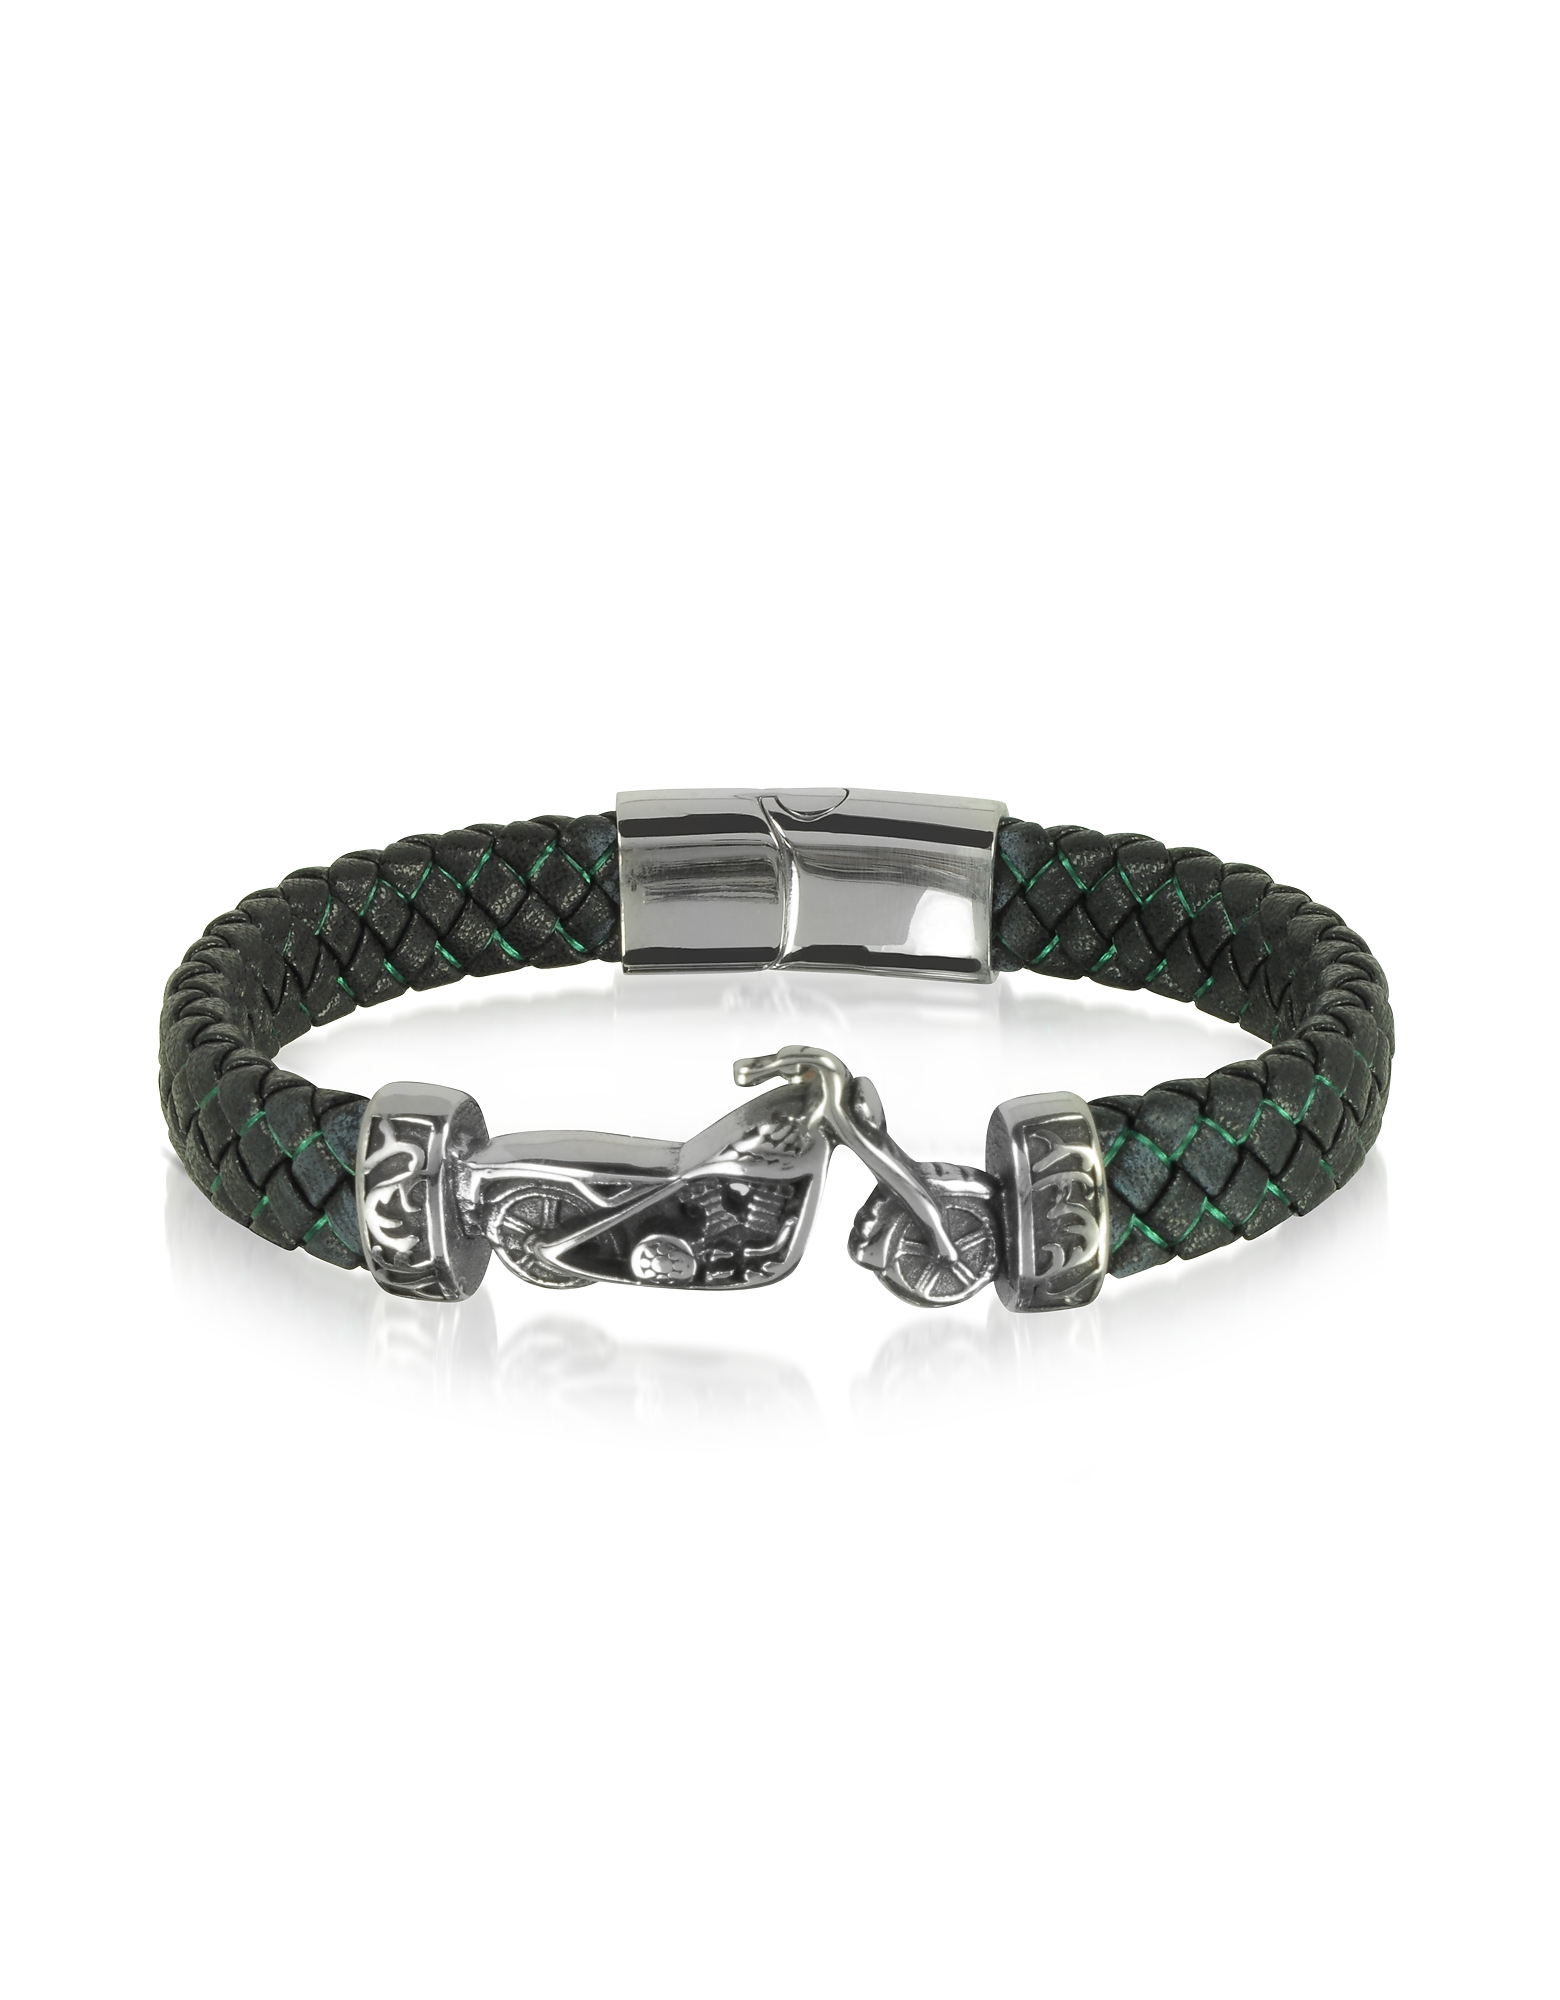 Blackbourne Men's Bracelets, Stainless Steel and Leather Motorbike Men's Bracelet